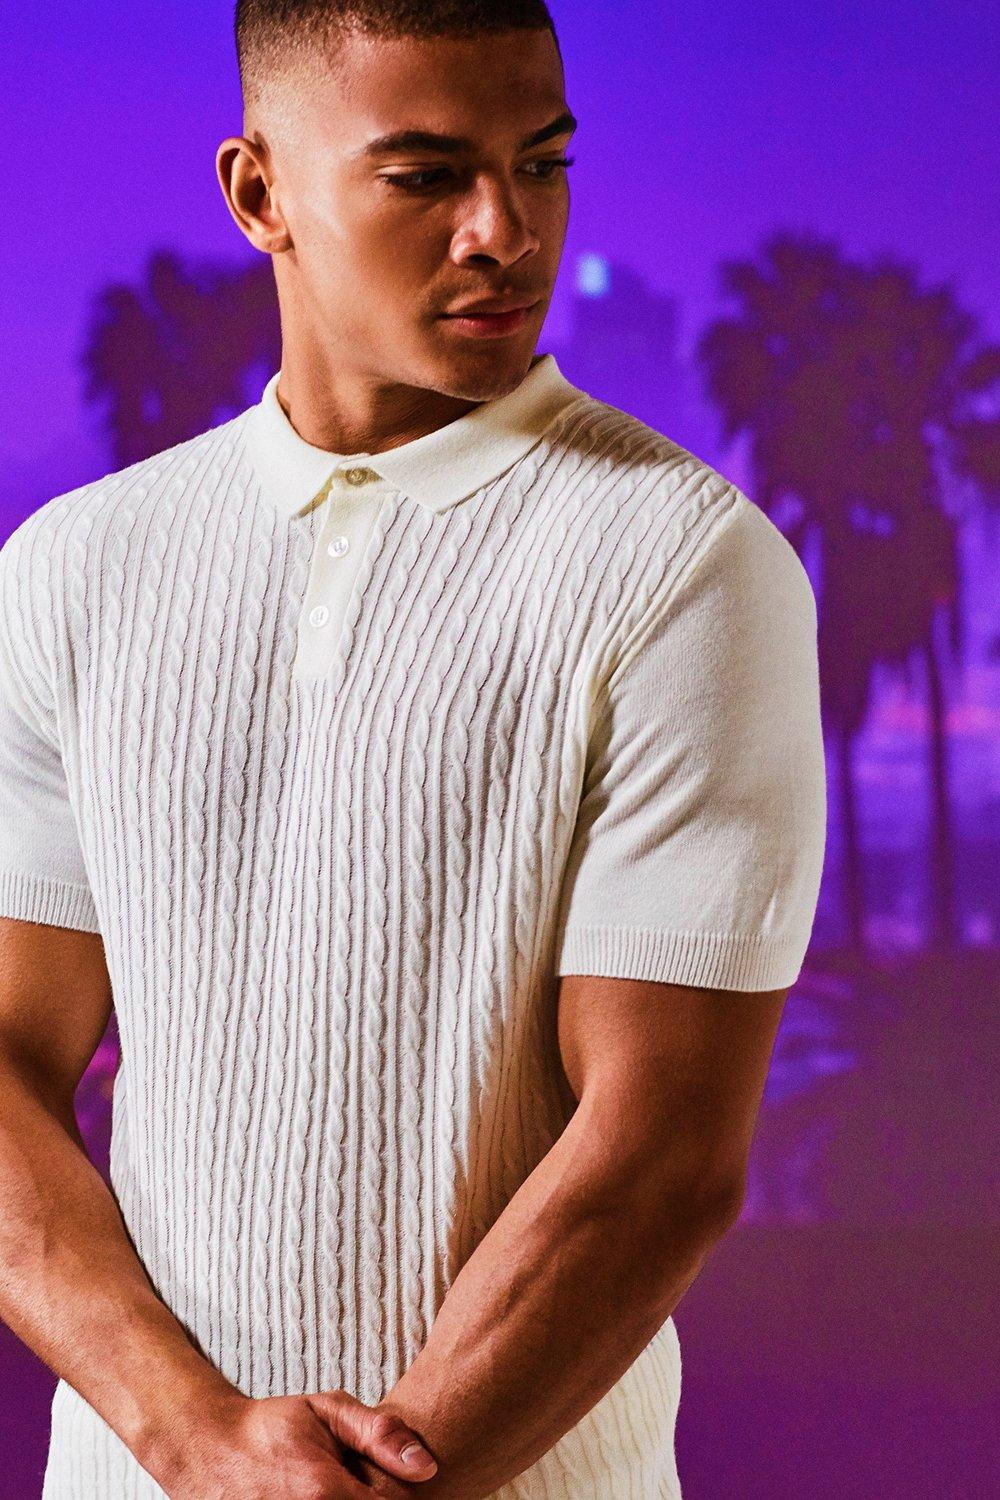 Vintage Shirts – Mens – Retro Shirts Mini Cable Knit Short Sleeve Muscle Fit Polo $32.00 AT vintagedancer.com